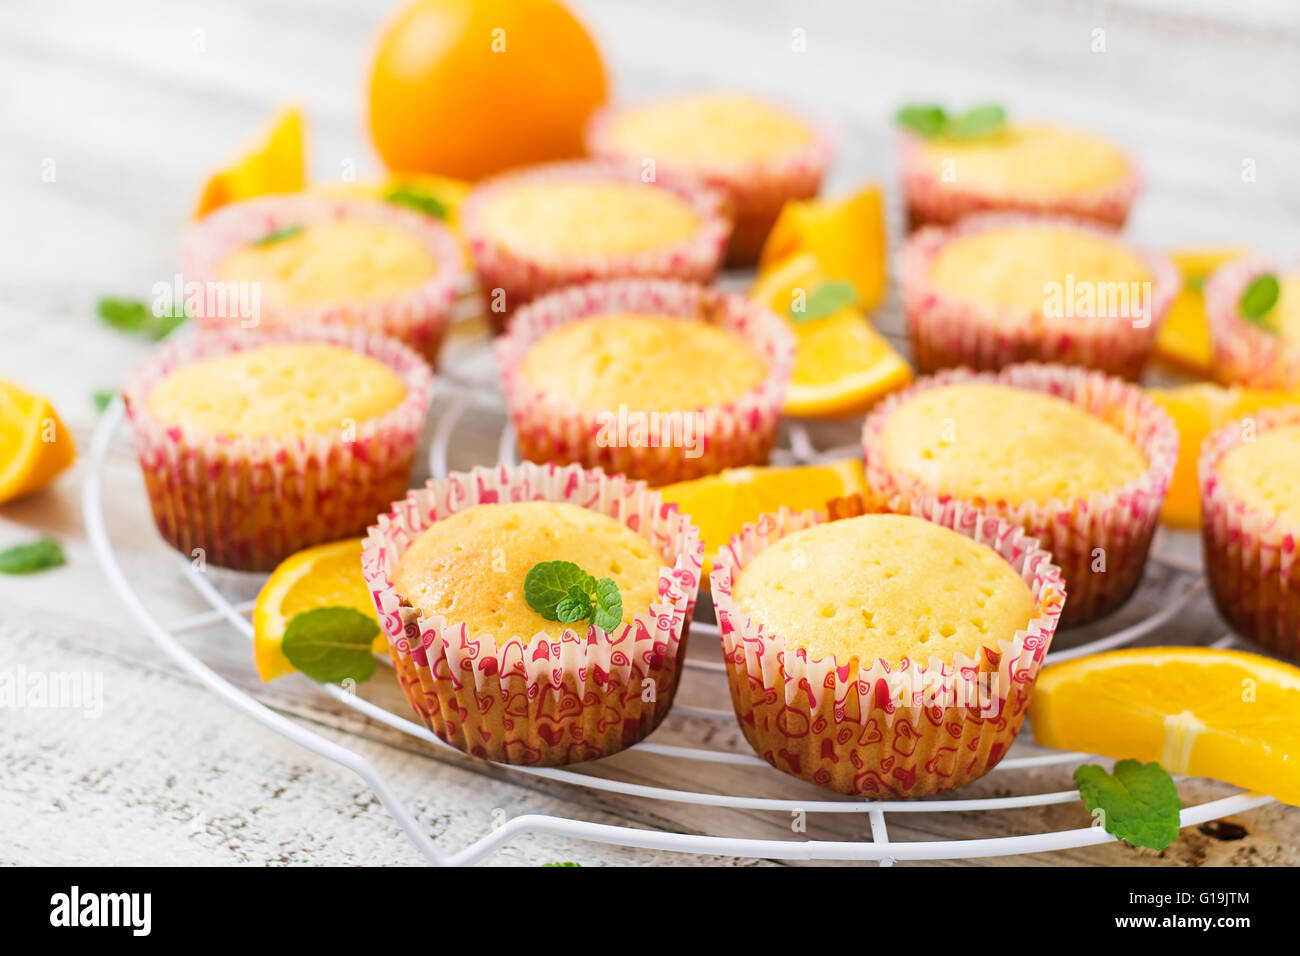 Tasty muffins with oranges and mint - Stock Image